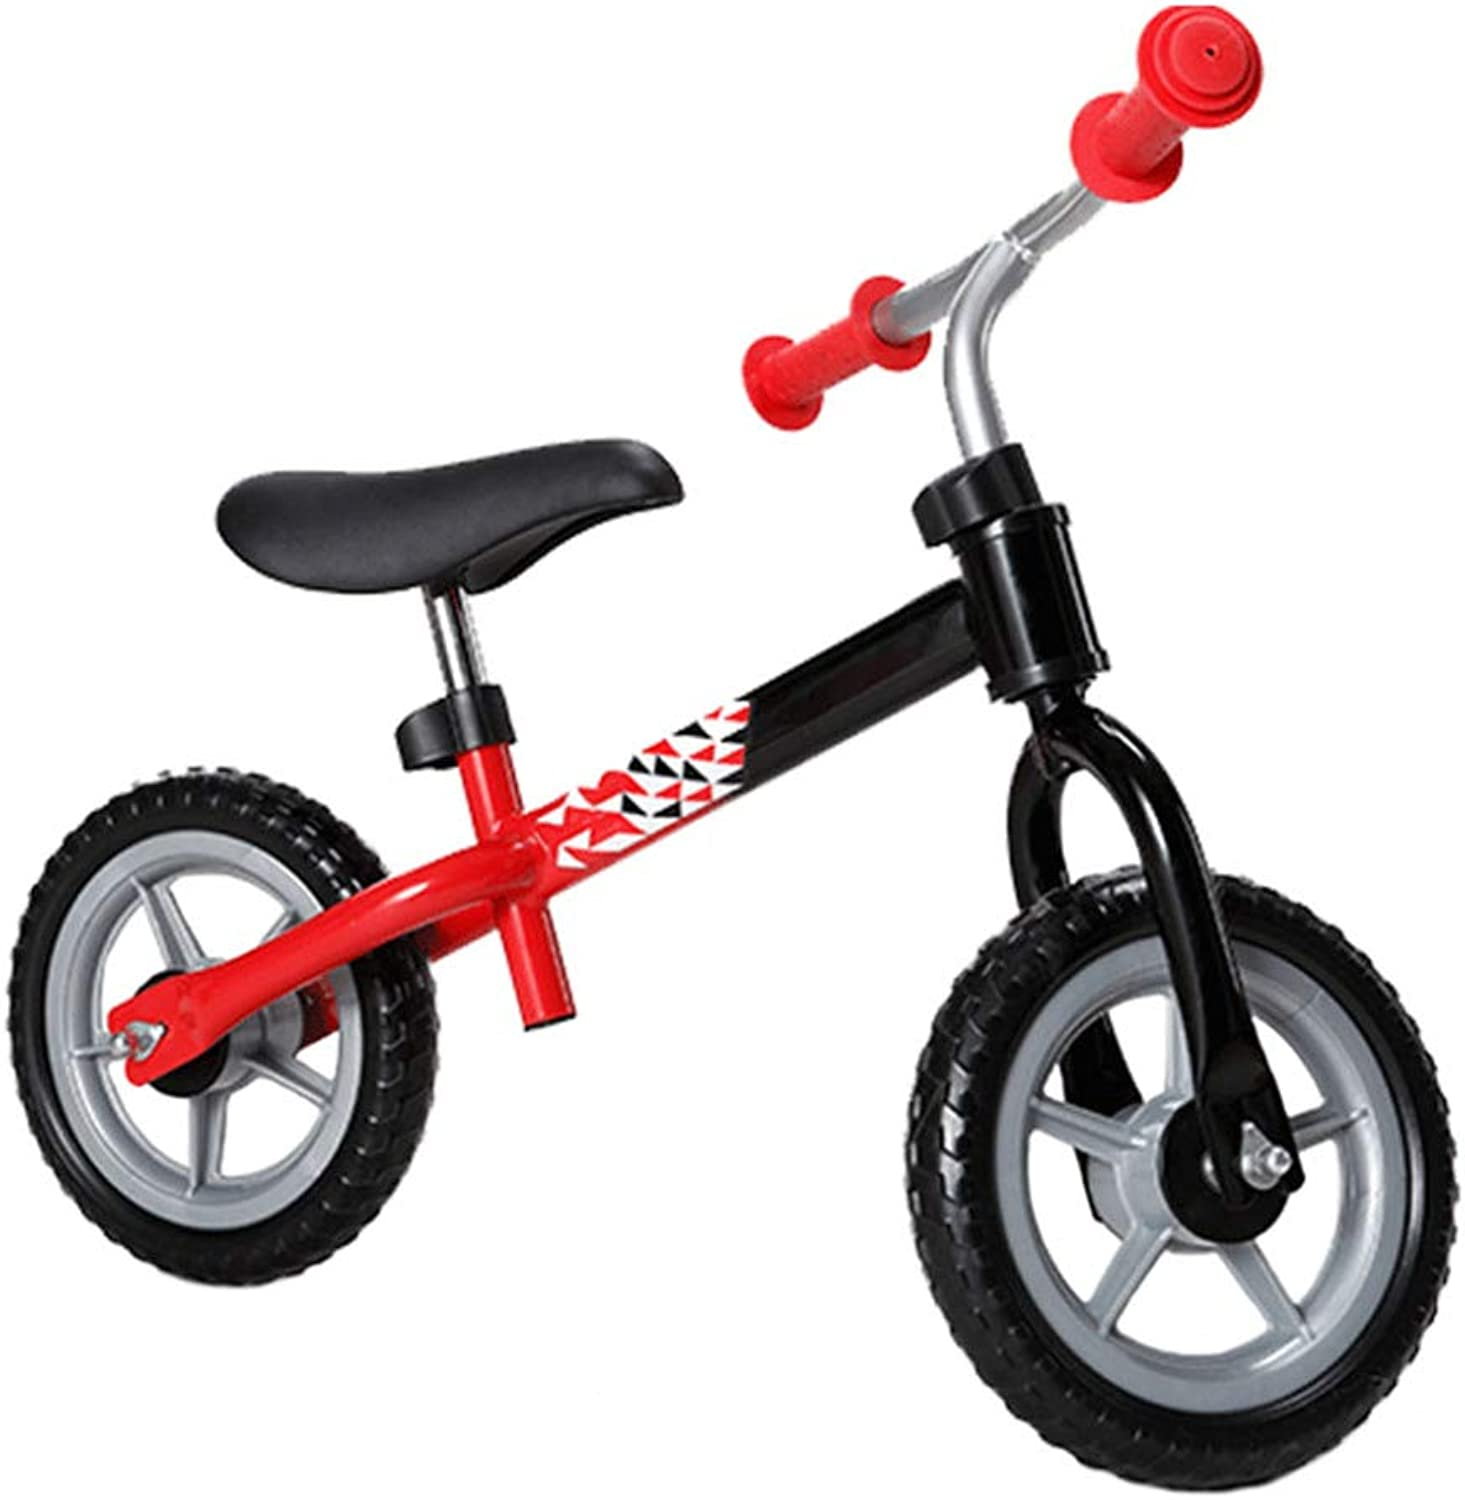 TH  Balance Bike First Bike  No Pedal, Carbon Steel Frame, Adjustable Seat,26 Years Old